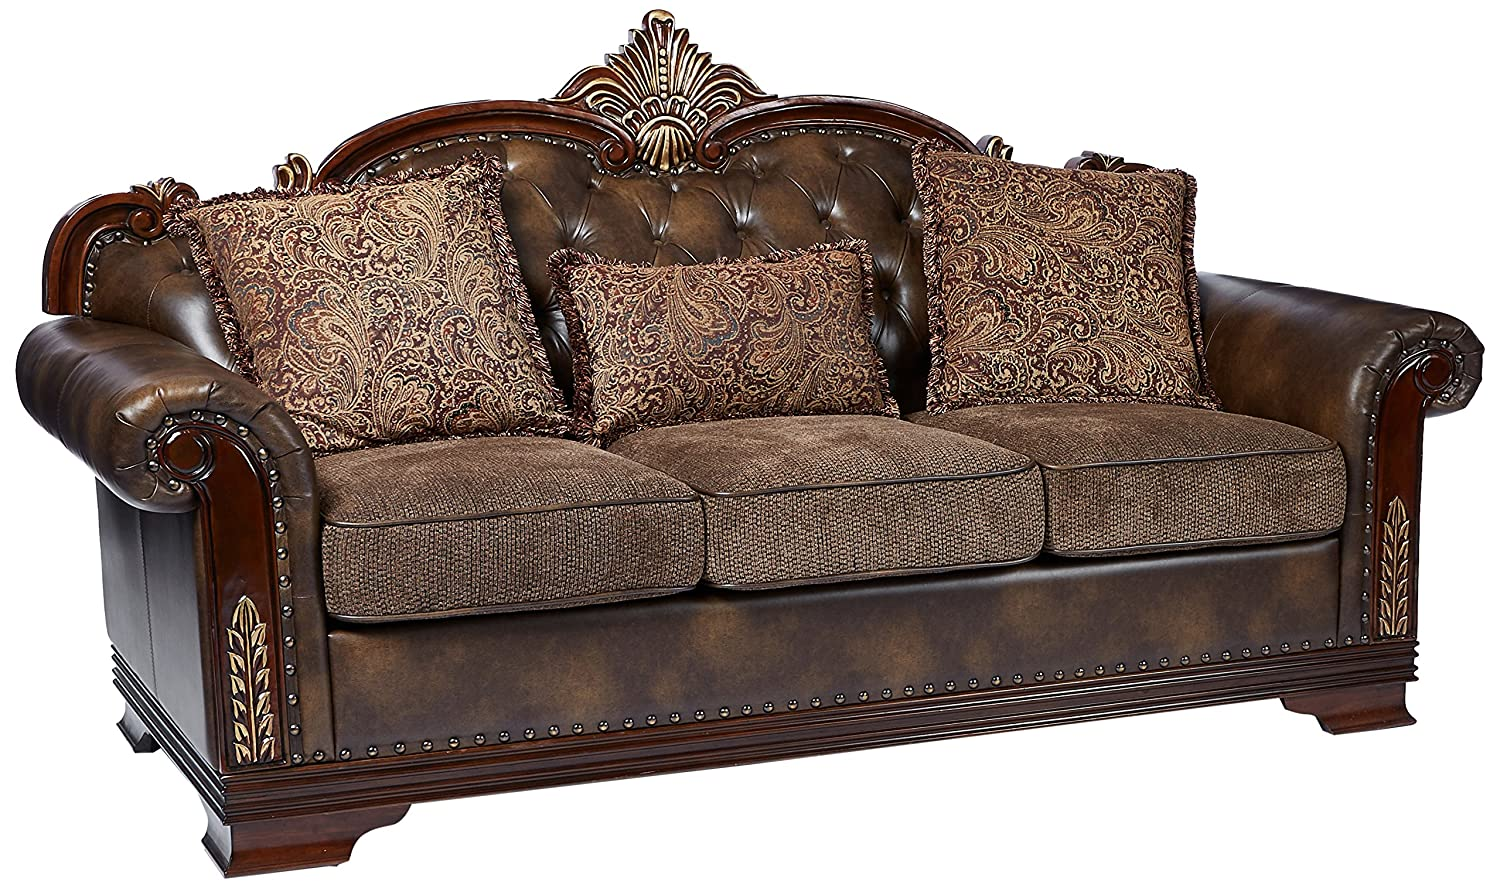 Homelegance 9815-3 Croydon Traditional Two-Tone Sofa